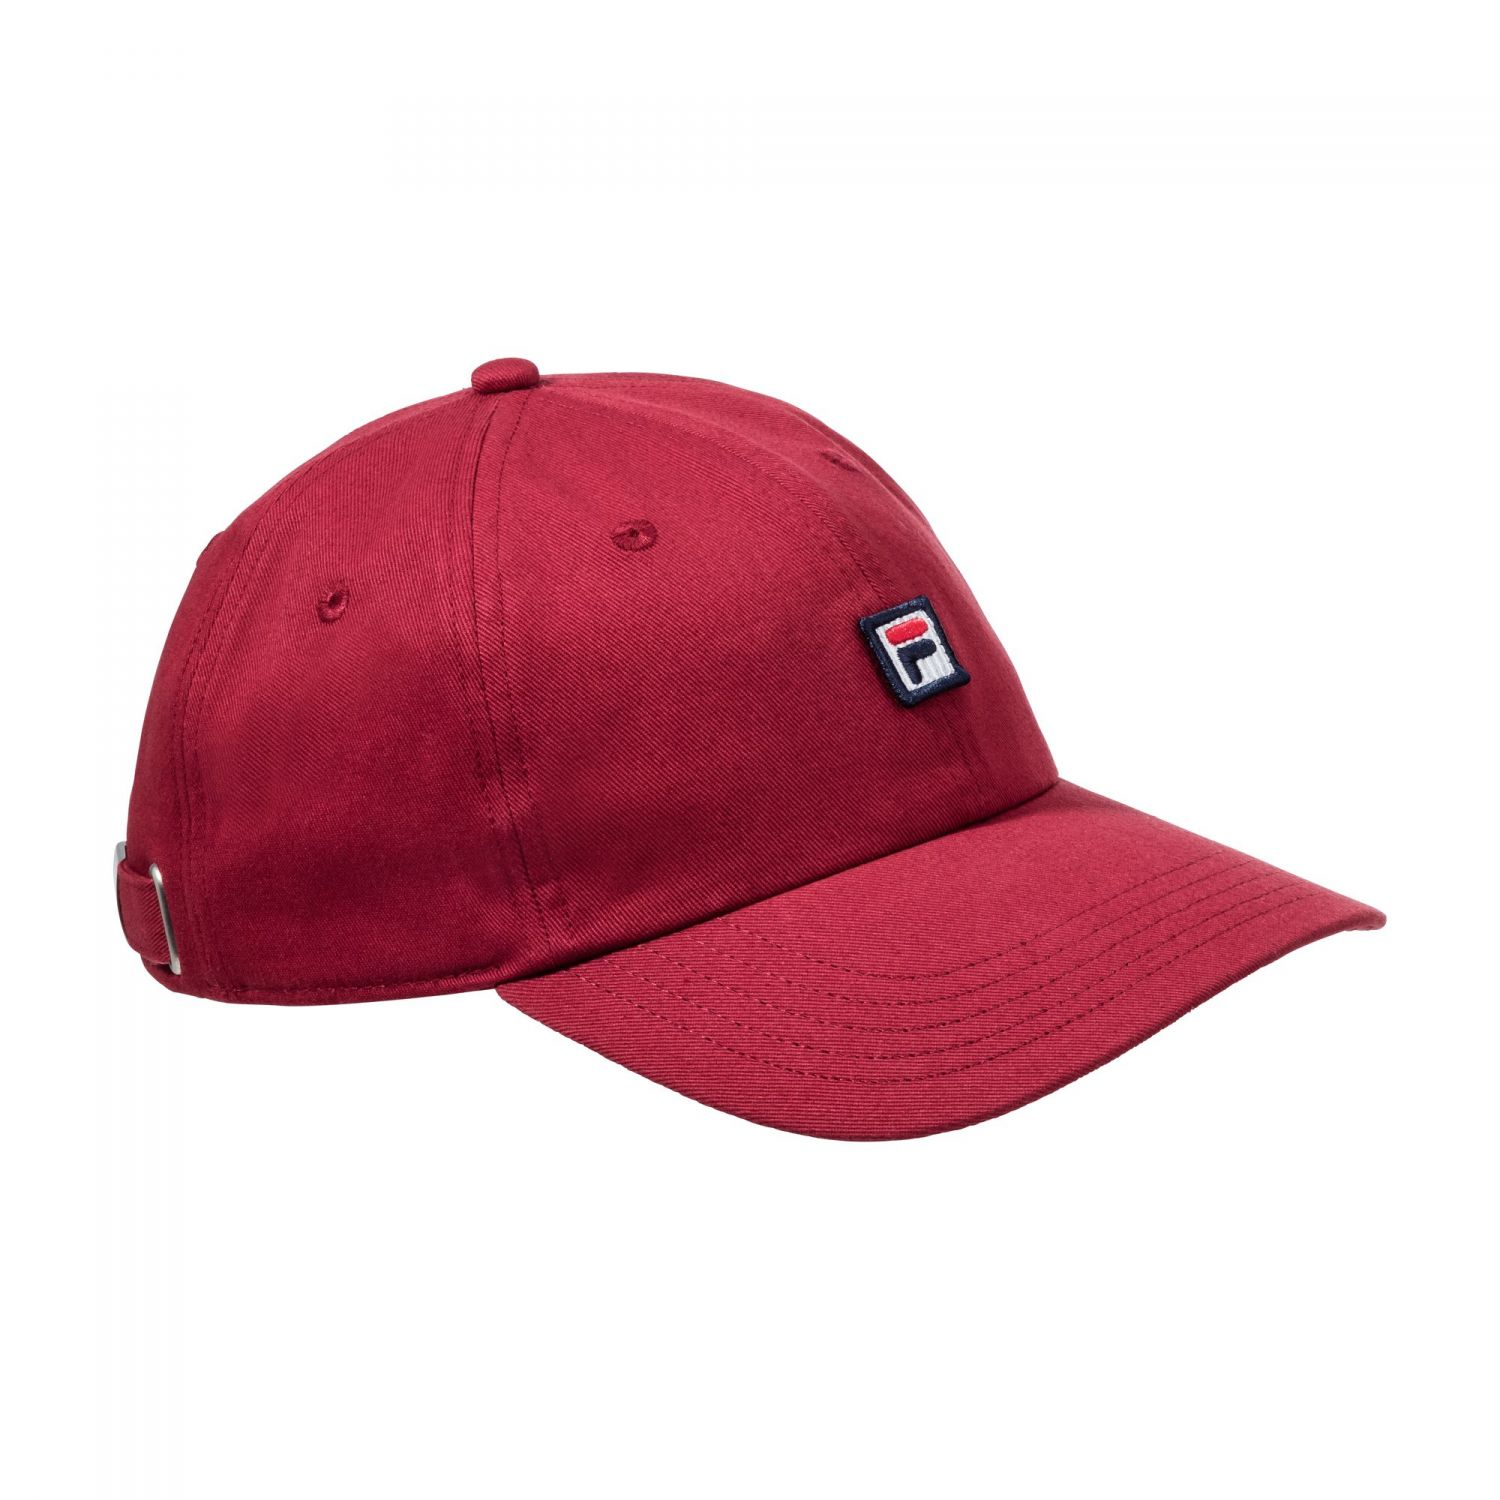 b1806d5ffbd0b1 Fila - Dad Cap Strap Back - 00014201702142 - red